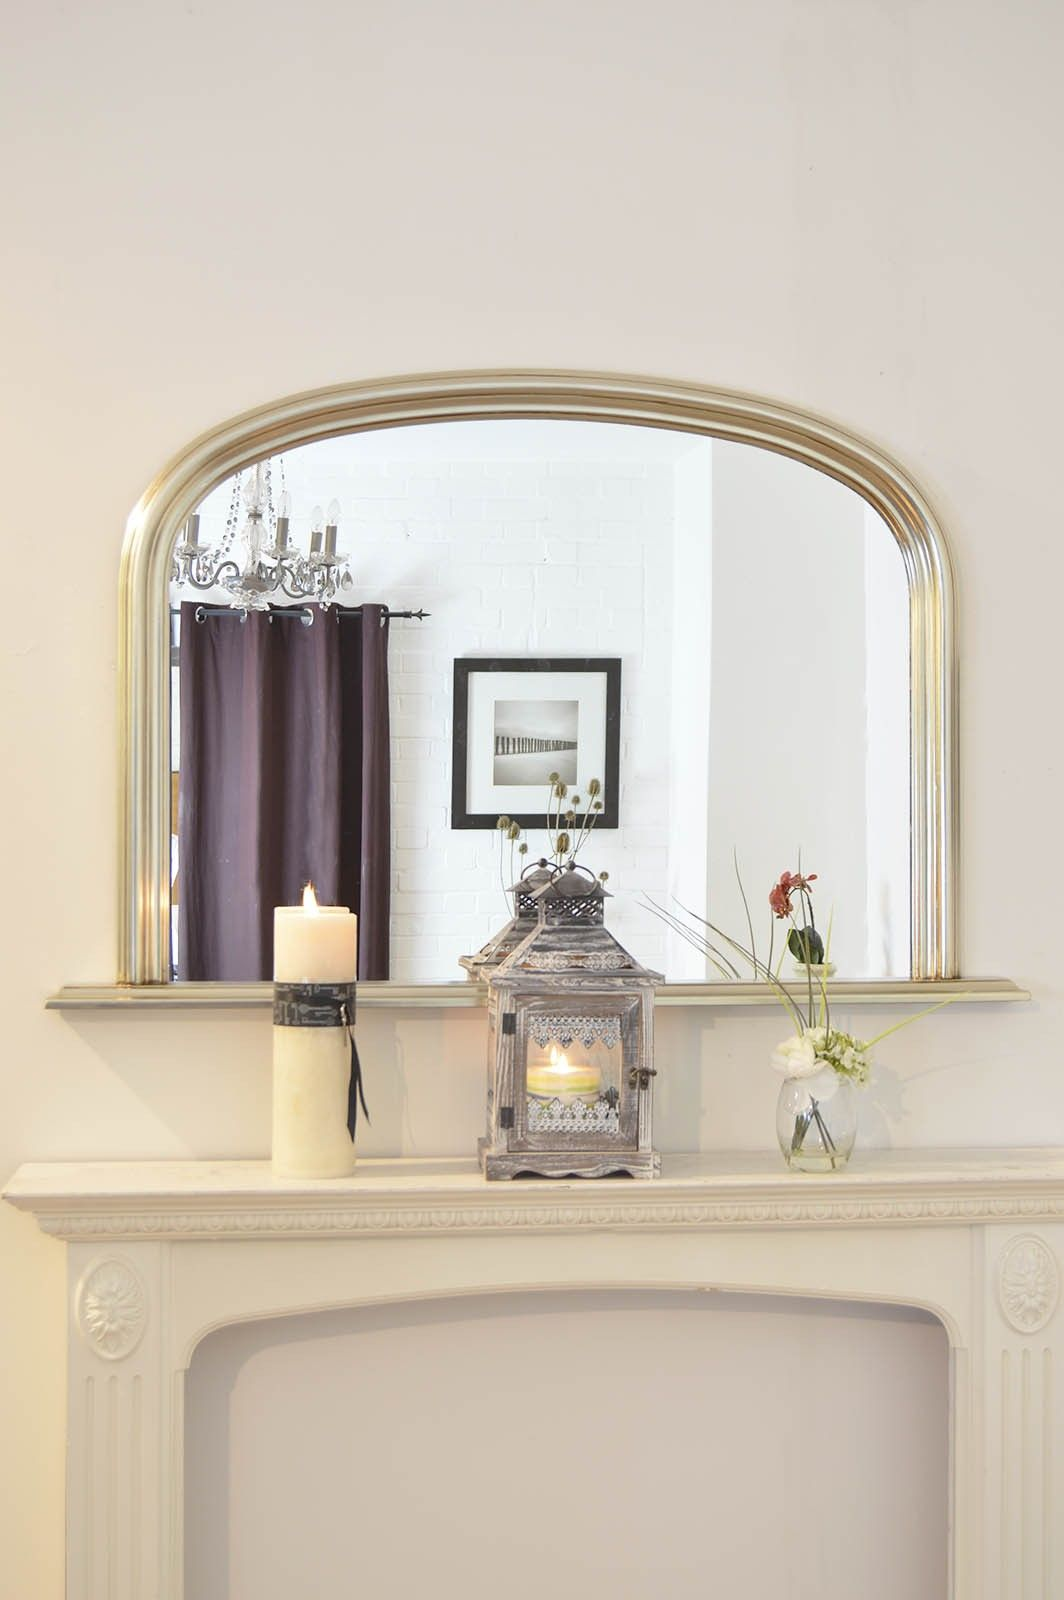 Large Silver Over Mantle Big Overmantle Wall Mirror 4Ft X 2Ft7